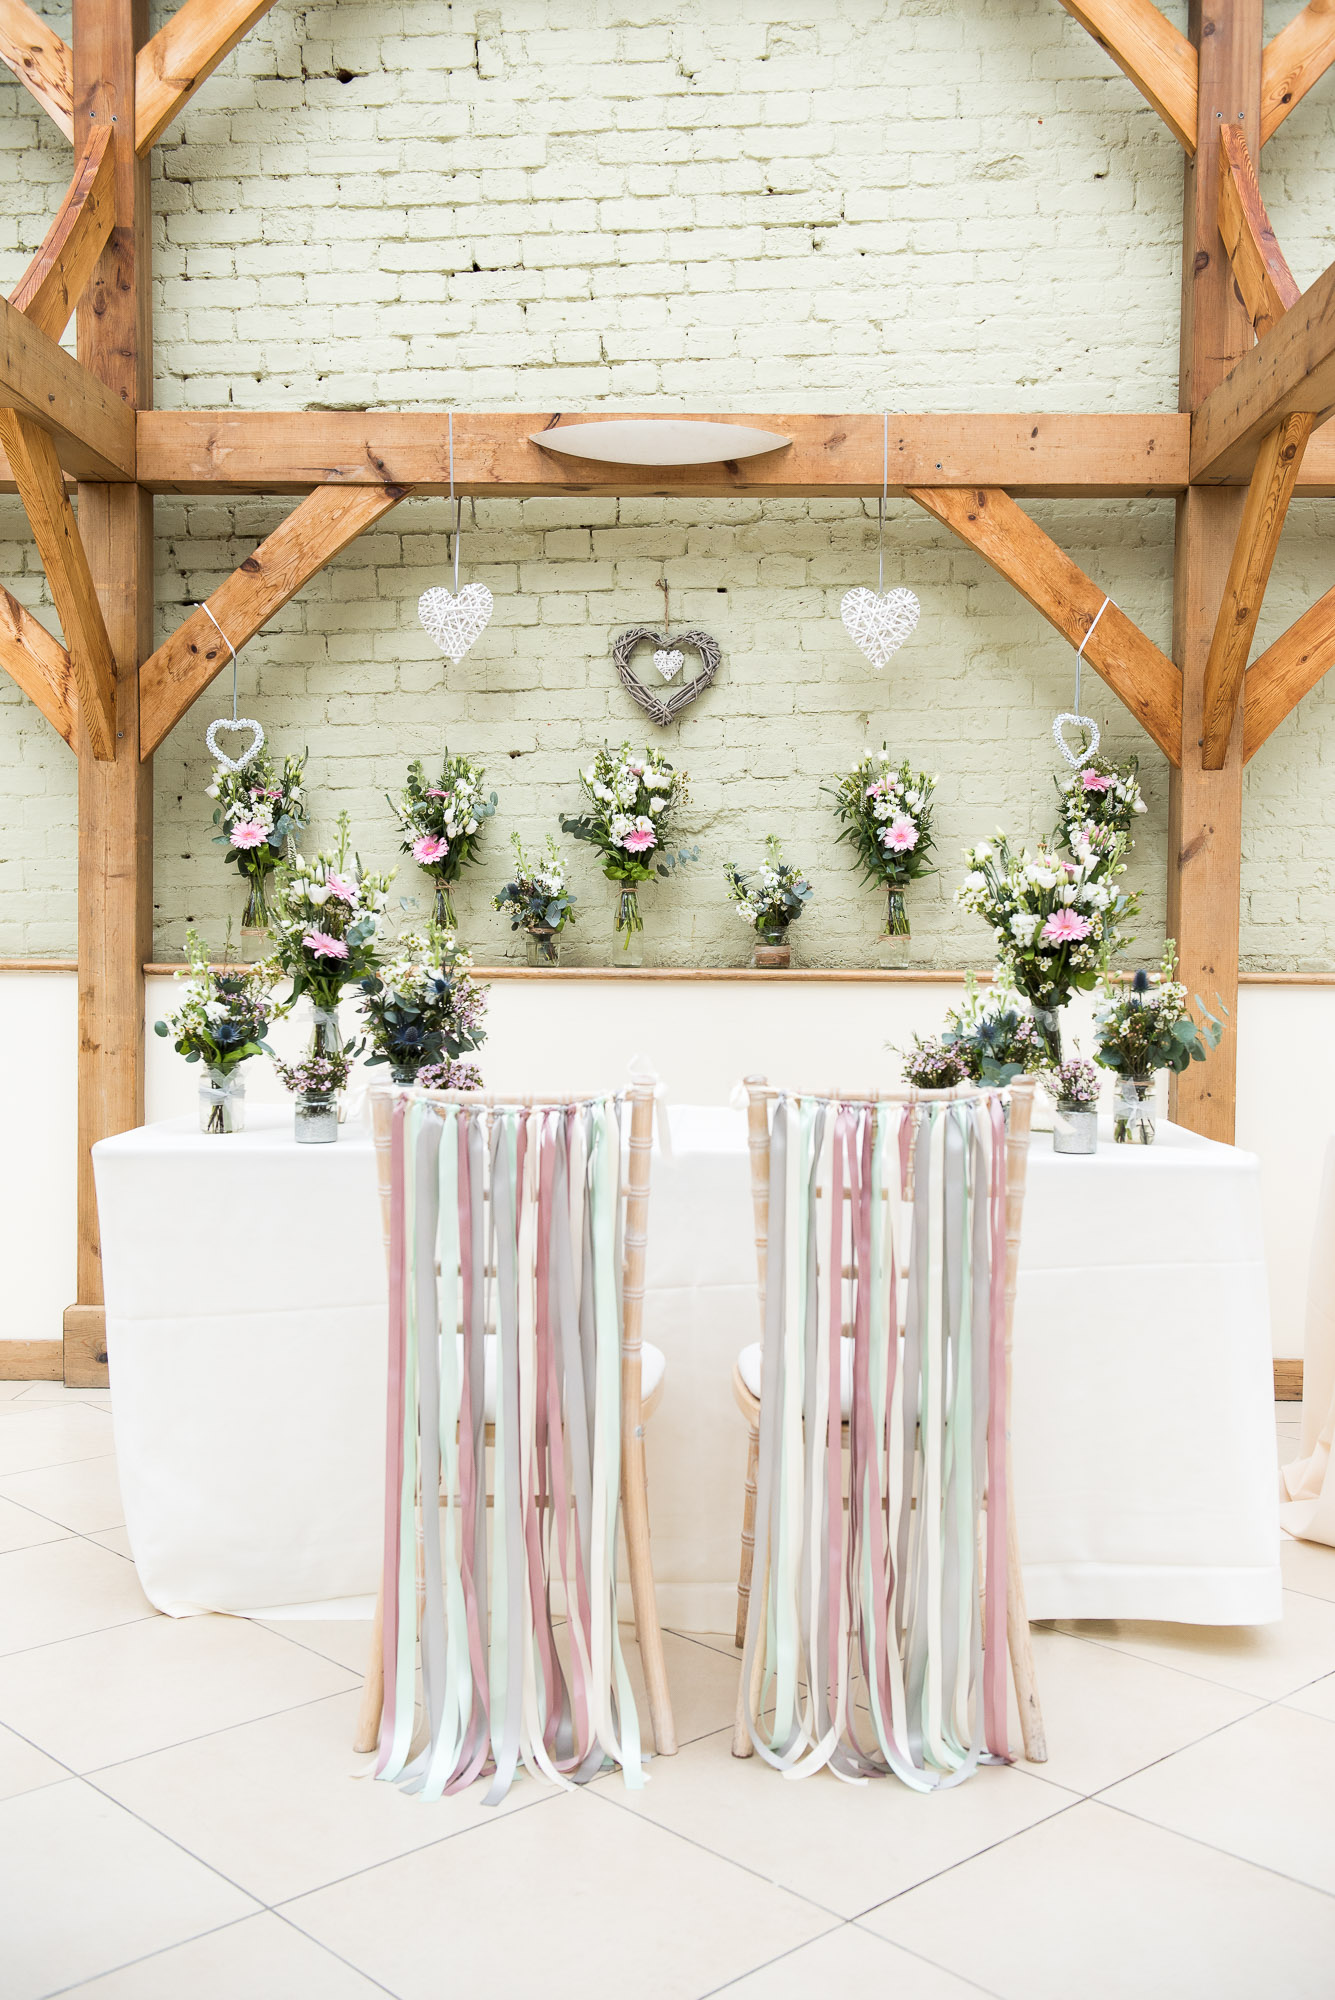 Chairs decorated with pastel coloured ribbons